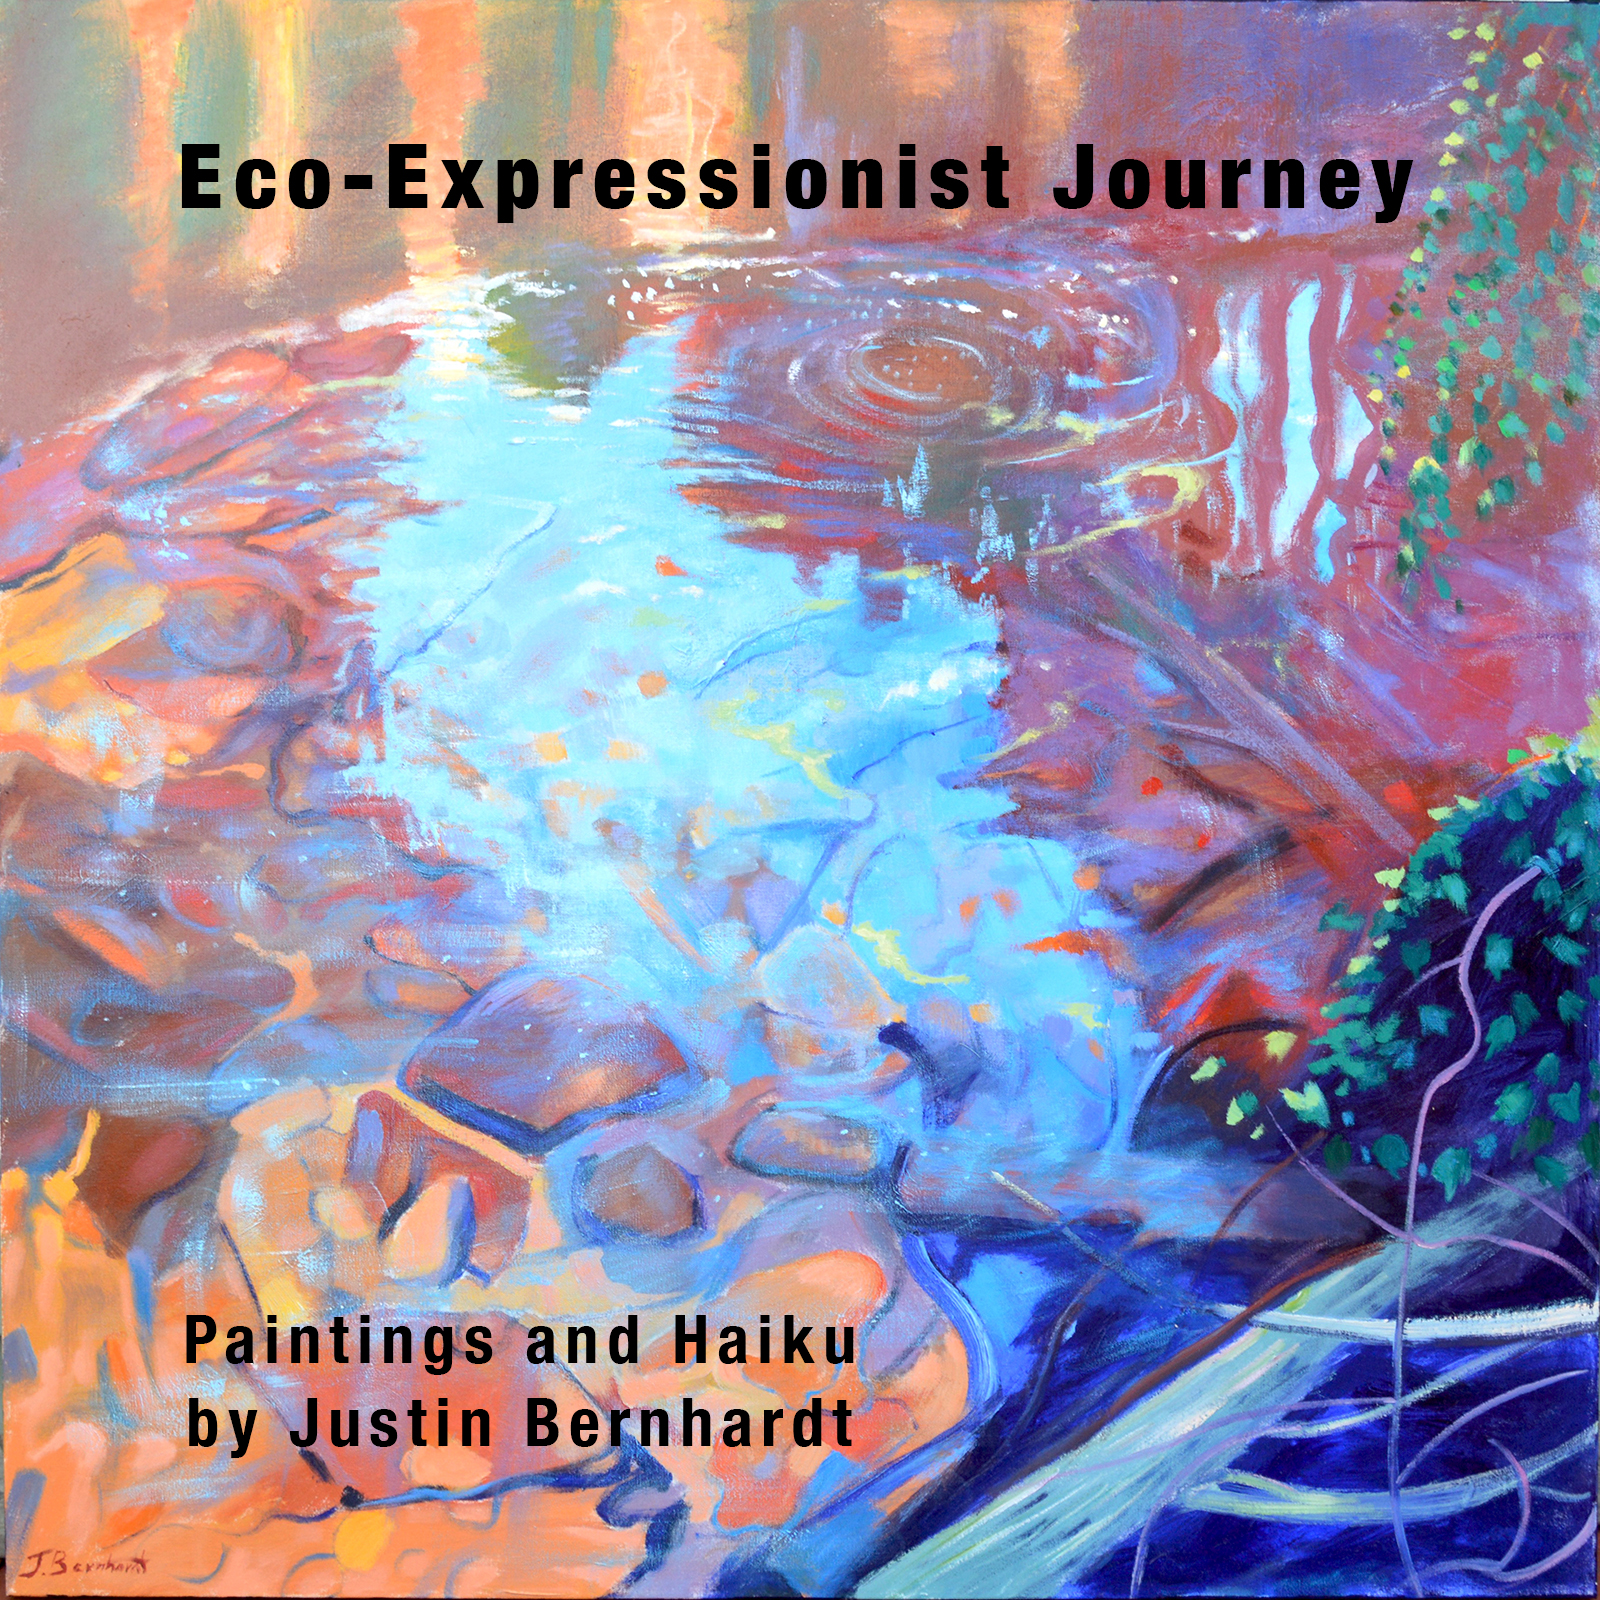 Eco-Expressionist Journey: - Paintings and Haiku by Justin Bernhardt